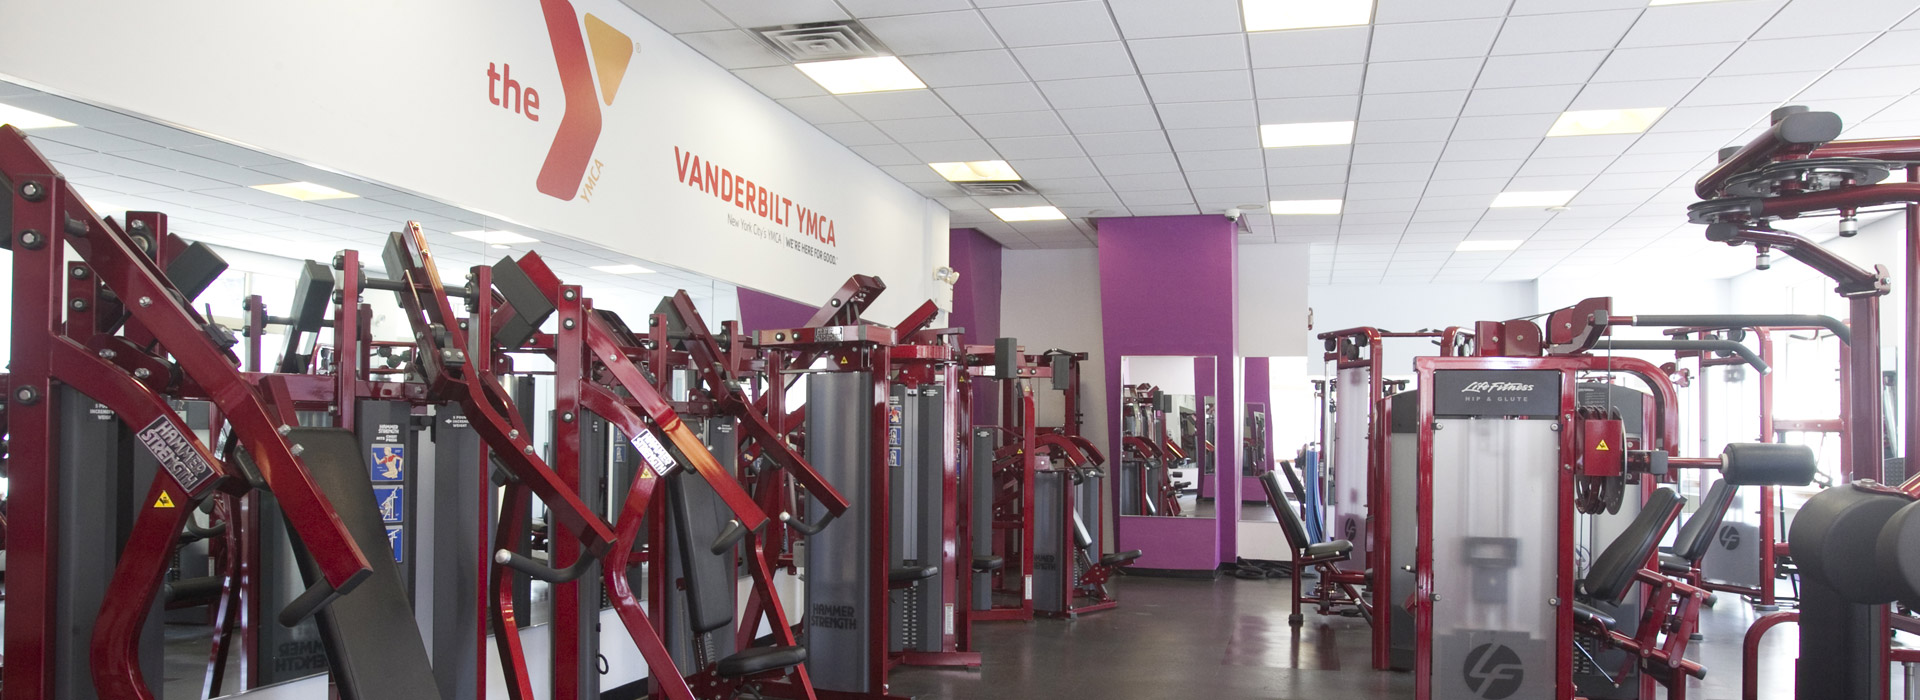 free group fitness classes | vanderbilt ymca